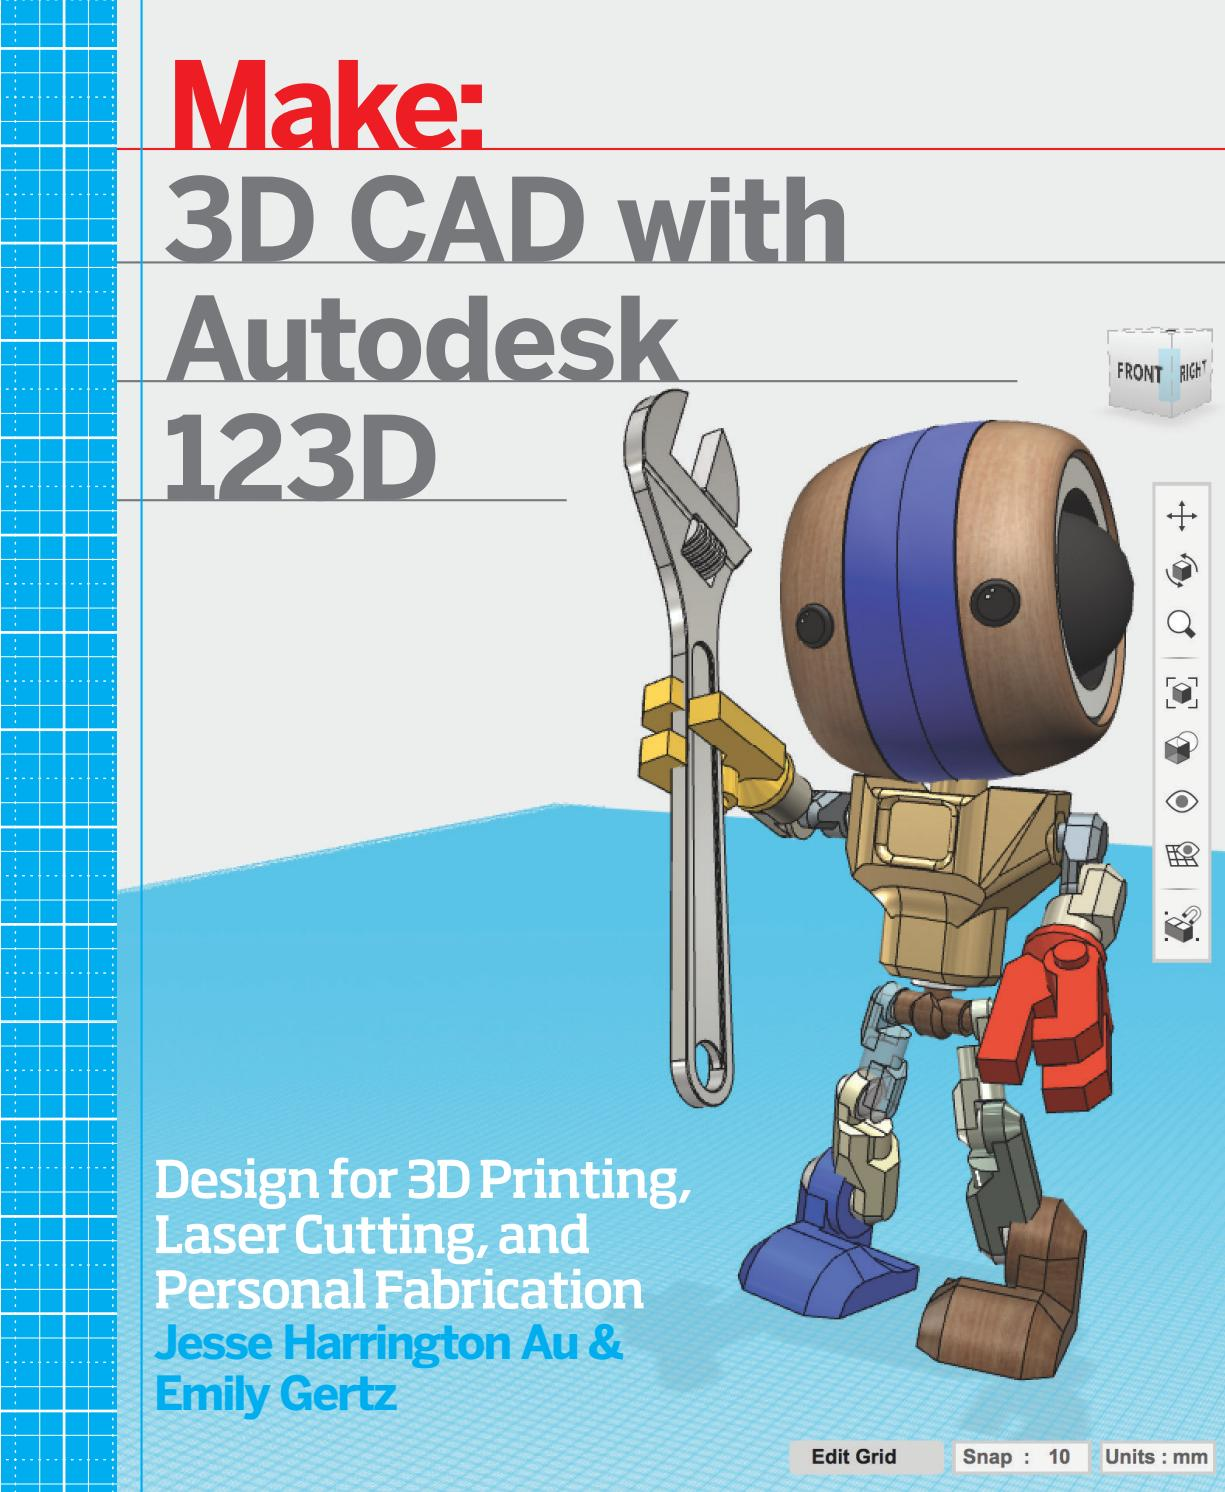 Make 3d cad with autodesk 123d by i360 - issuu